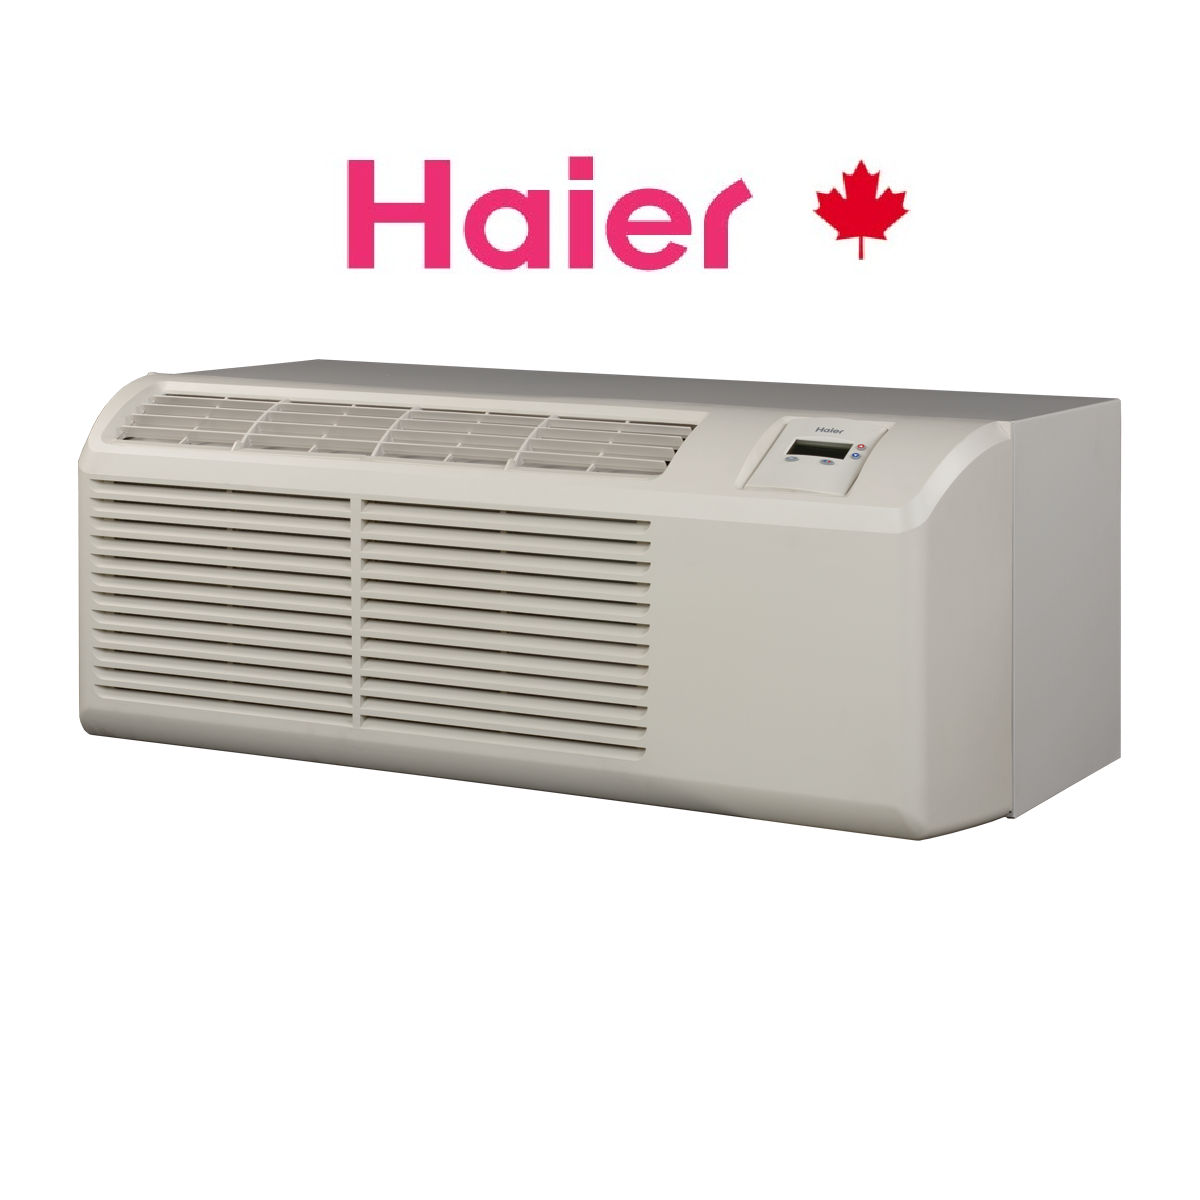 HAIER PTAC UNITS PTCH0901UAC COOLING AND HEATING